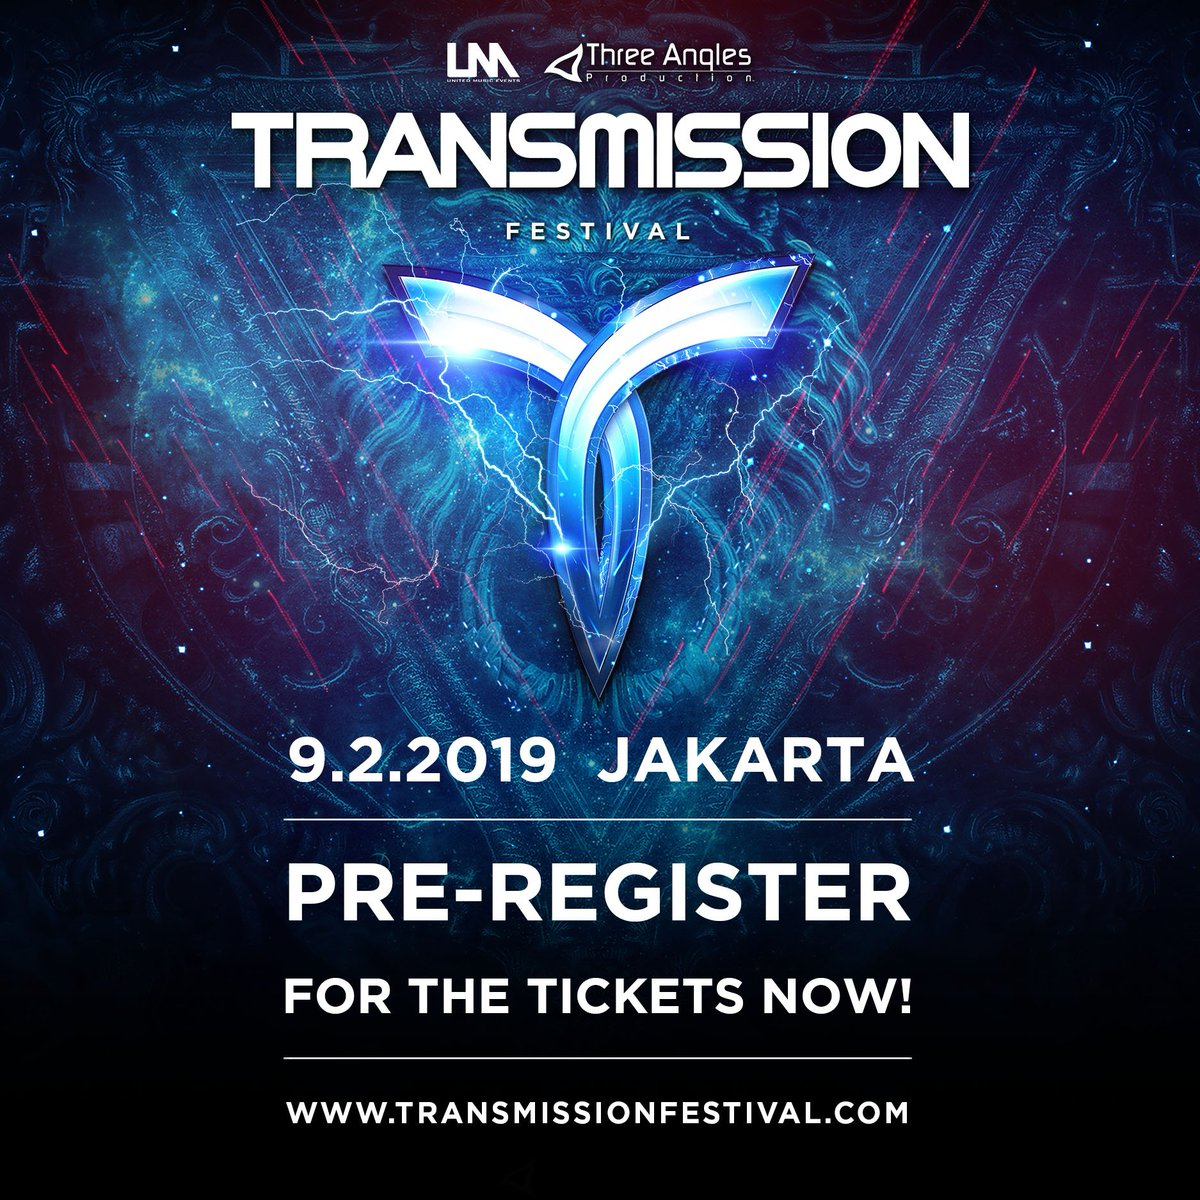 Transmission Festival On Twitter After Massive Shows In Bangkok And Shanghai Transmissionprg Is Coming To Jakarta Indonesia Mark The Date Saturday 9 2 2019 And Invite Your Friends To The Event Page